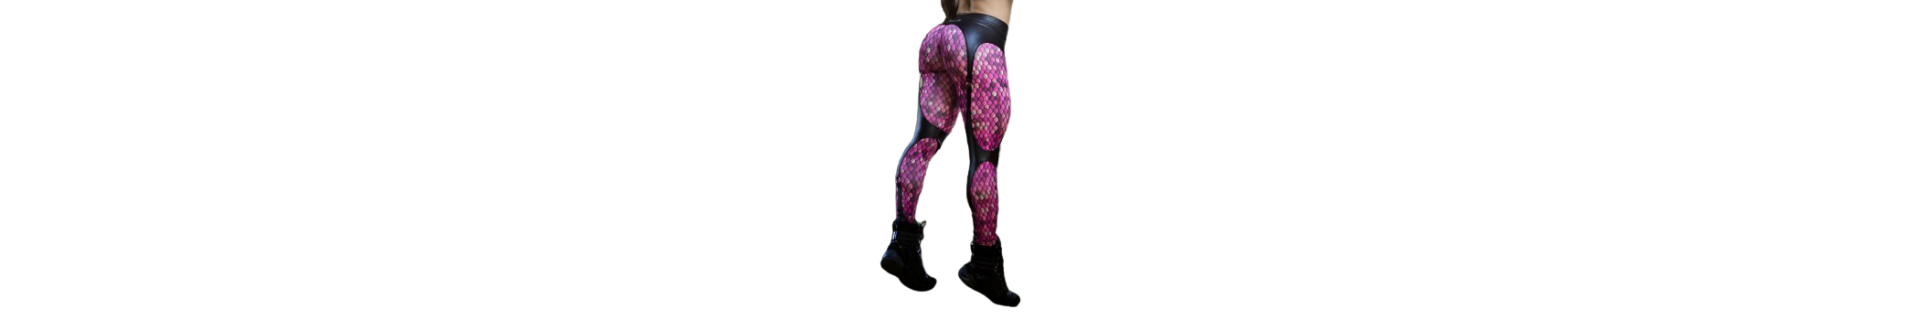 special leggings for the gym, fitness and leisure.